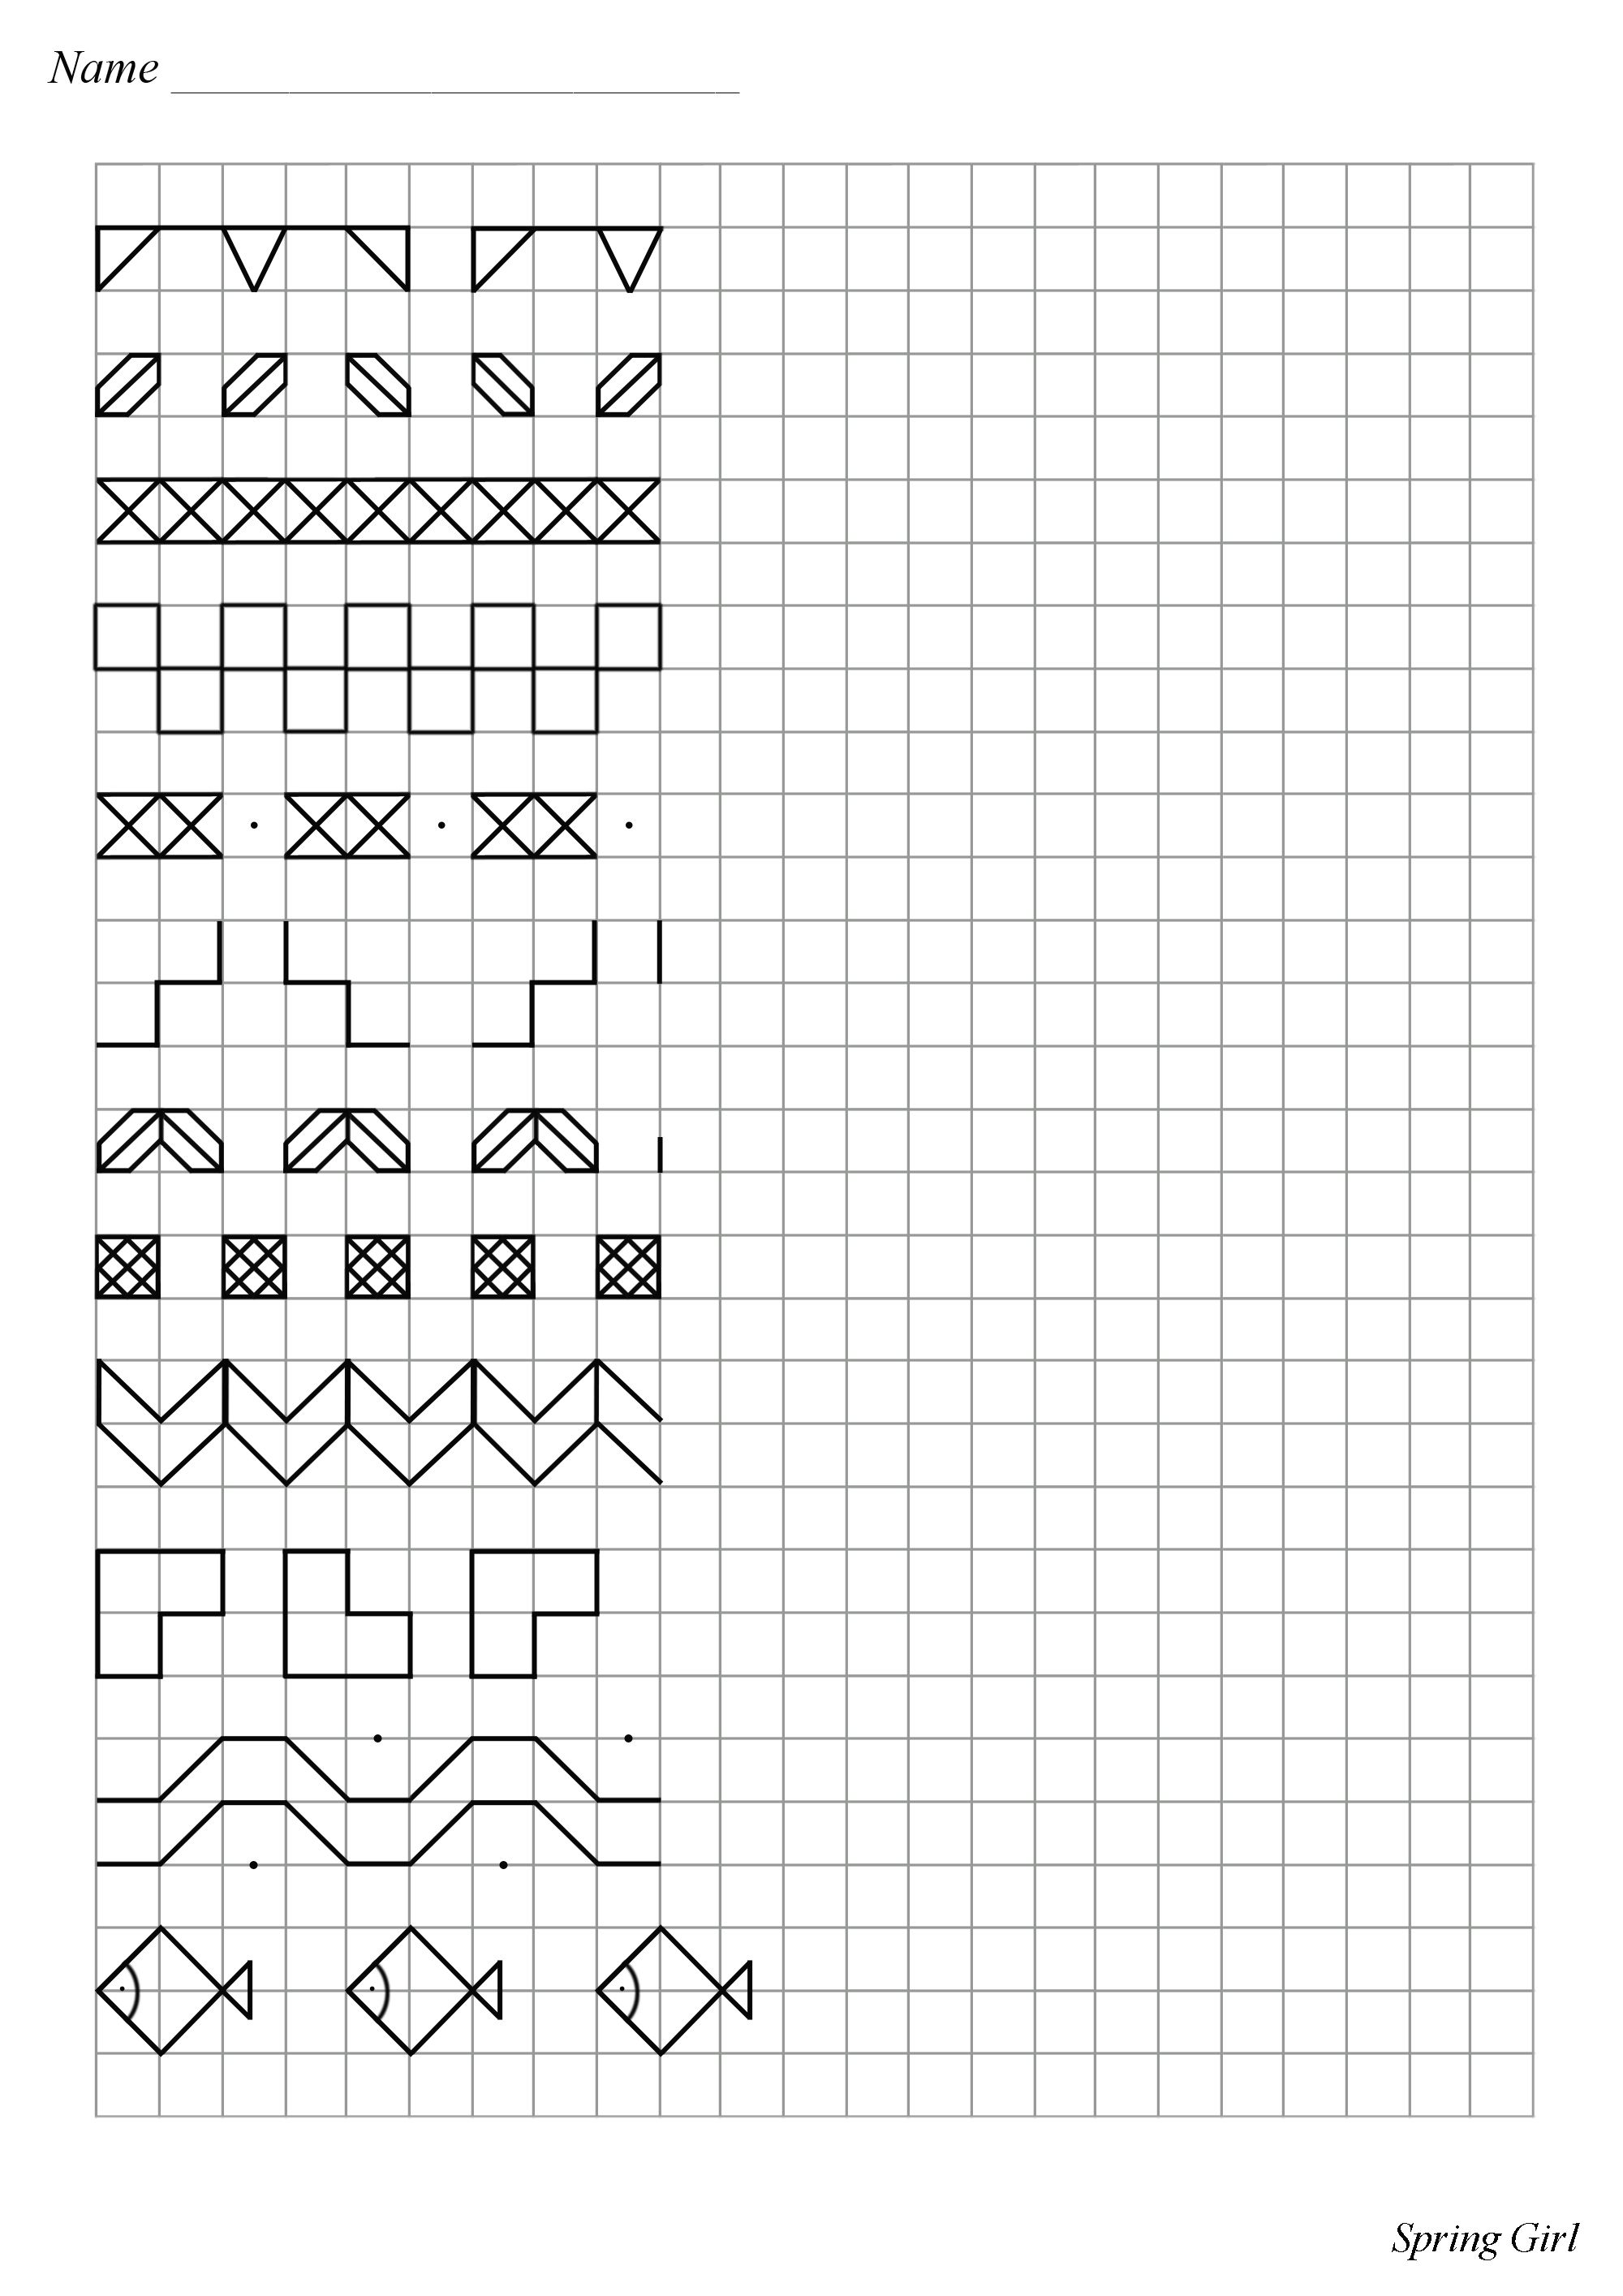 Symmetry Activities Coordinate Graphing Worksheets For Kids